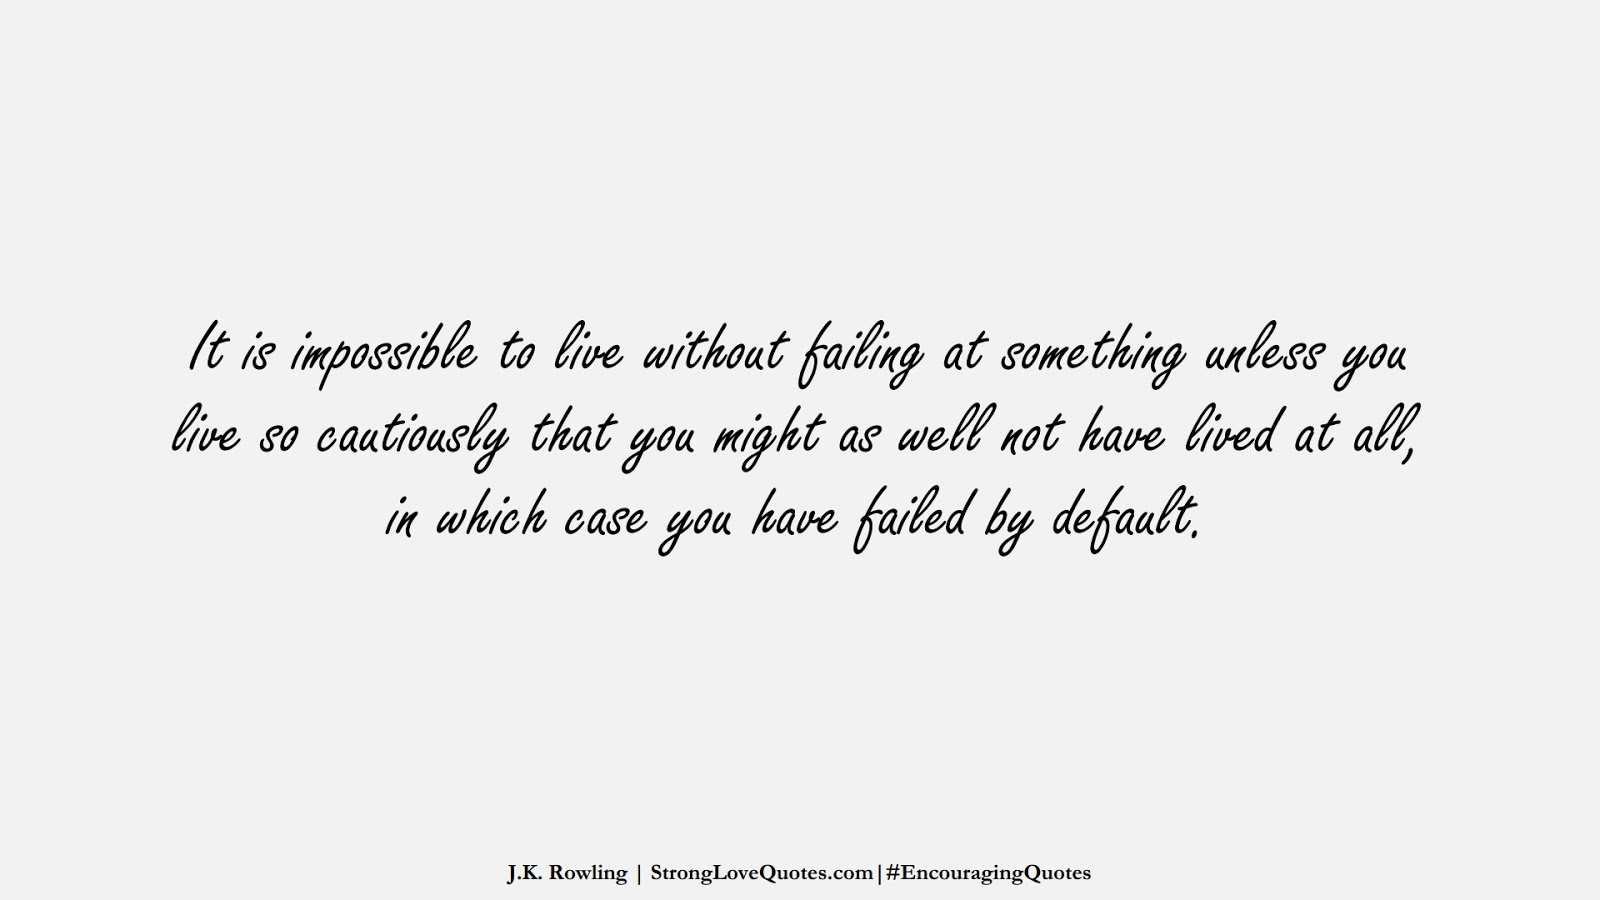 It is impossible to live without failing at something unless you live so cautiously that you might as well not have lived at all, in which case you have failed by default. (J.K. Rowling);  #EncouragingQuotes